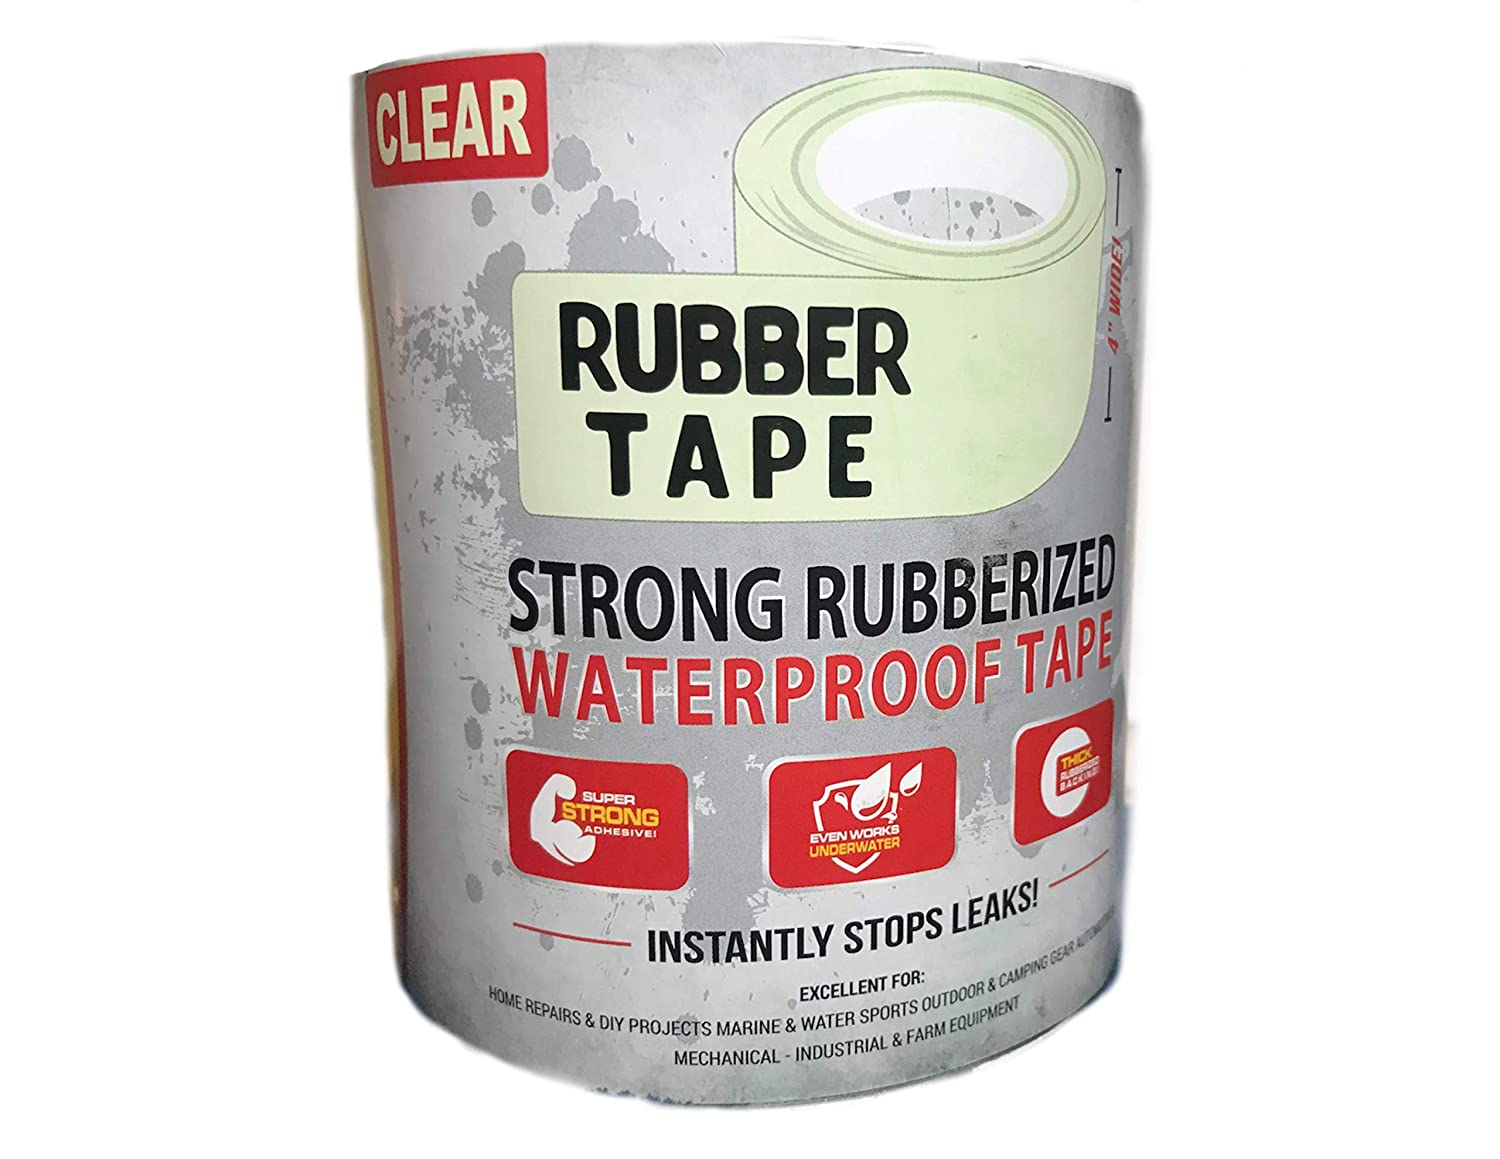 Clear Rubber Tape 4 by 6 Rubberized Waterproof Flexable extreamly Durable